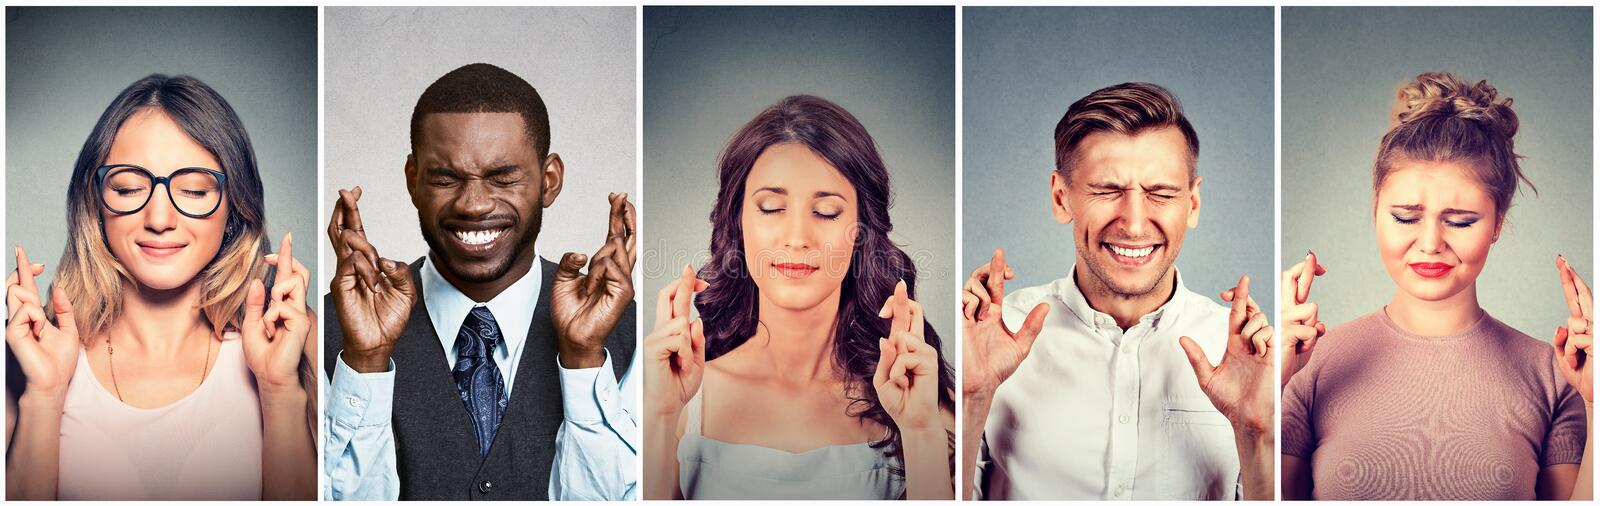 Group of multiethnic young people hopeful crossing their fingers hoping stock image